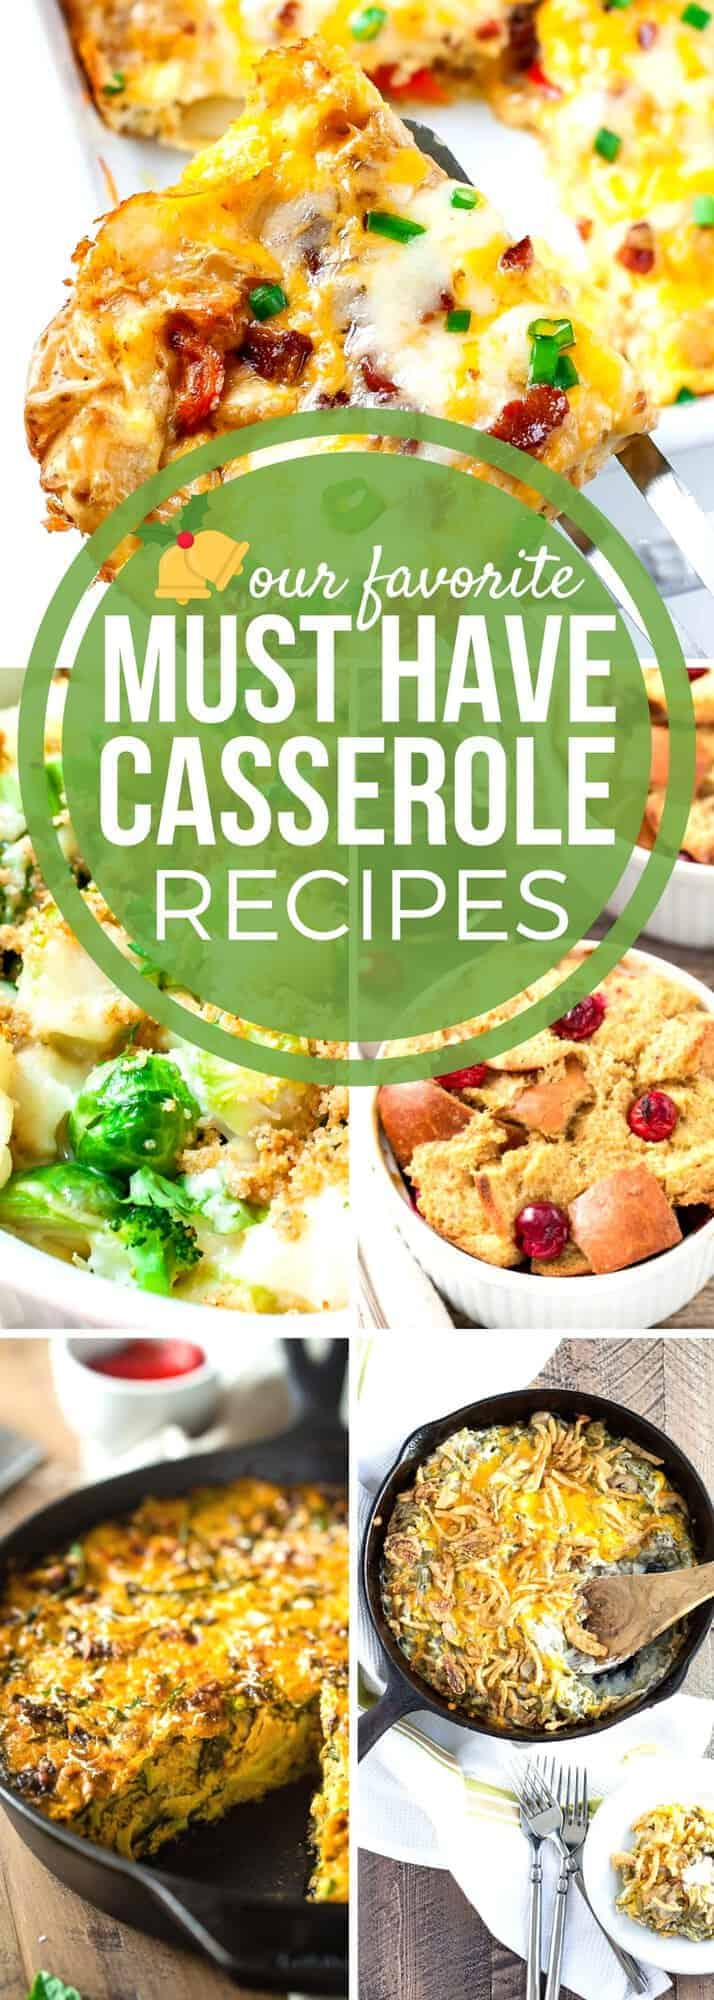 Keep the holiday stress away with our favorite Holiday Casserole Recipes. These recipes will help you easily feed your holiday crowd deliciously! From breakfast to your favorite side dish casserole recipes, Thanksgiving, Christmas, Easter, or any special occasion is easier to manage when you are prepared with these easy casserole recipes! #SundaySupper #HolidayRecipes #CasseroleRecipes #EasyRecipes